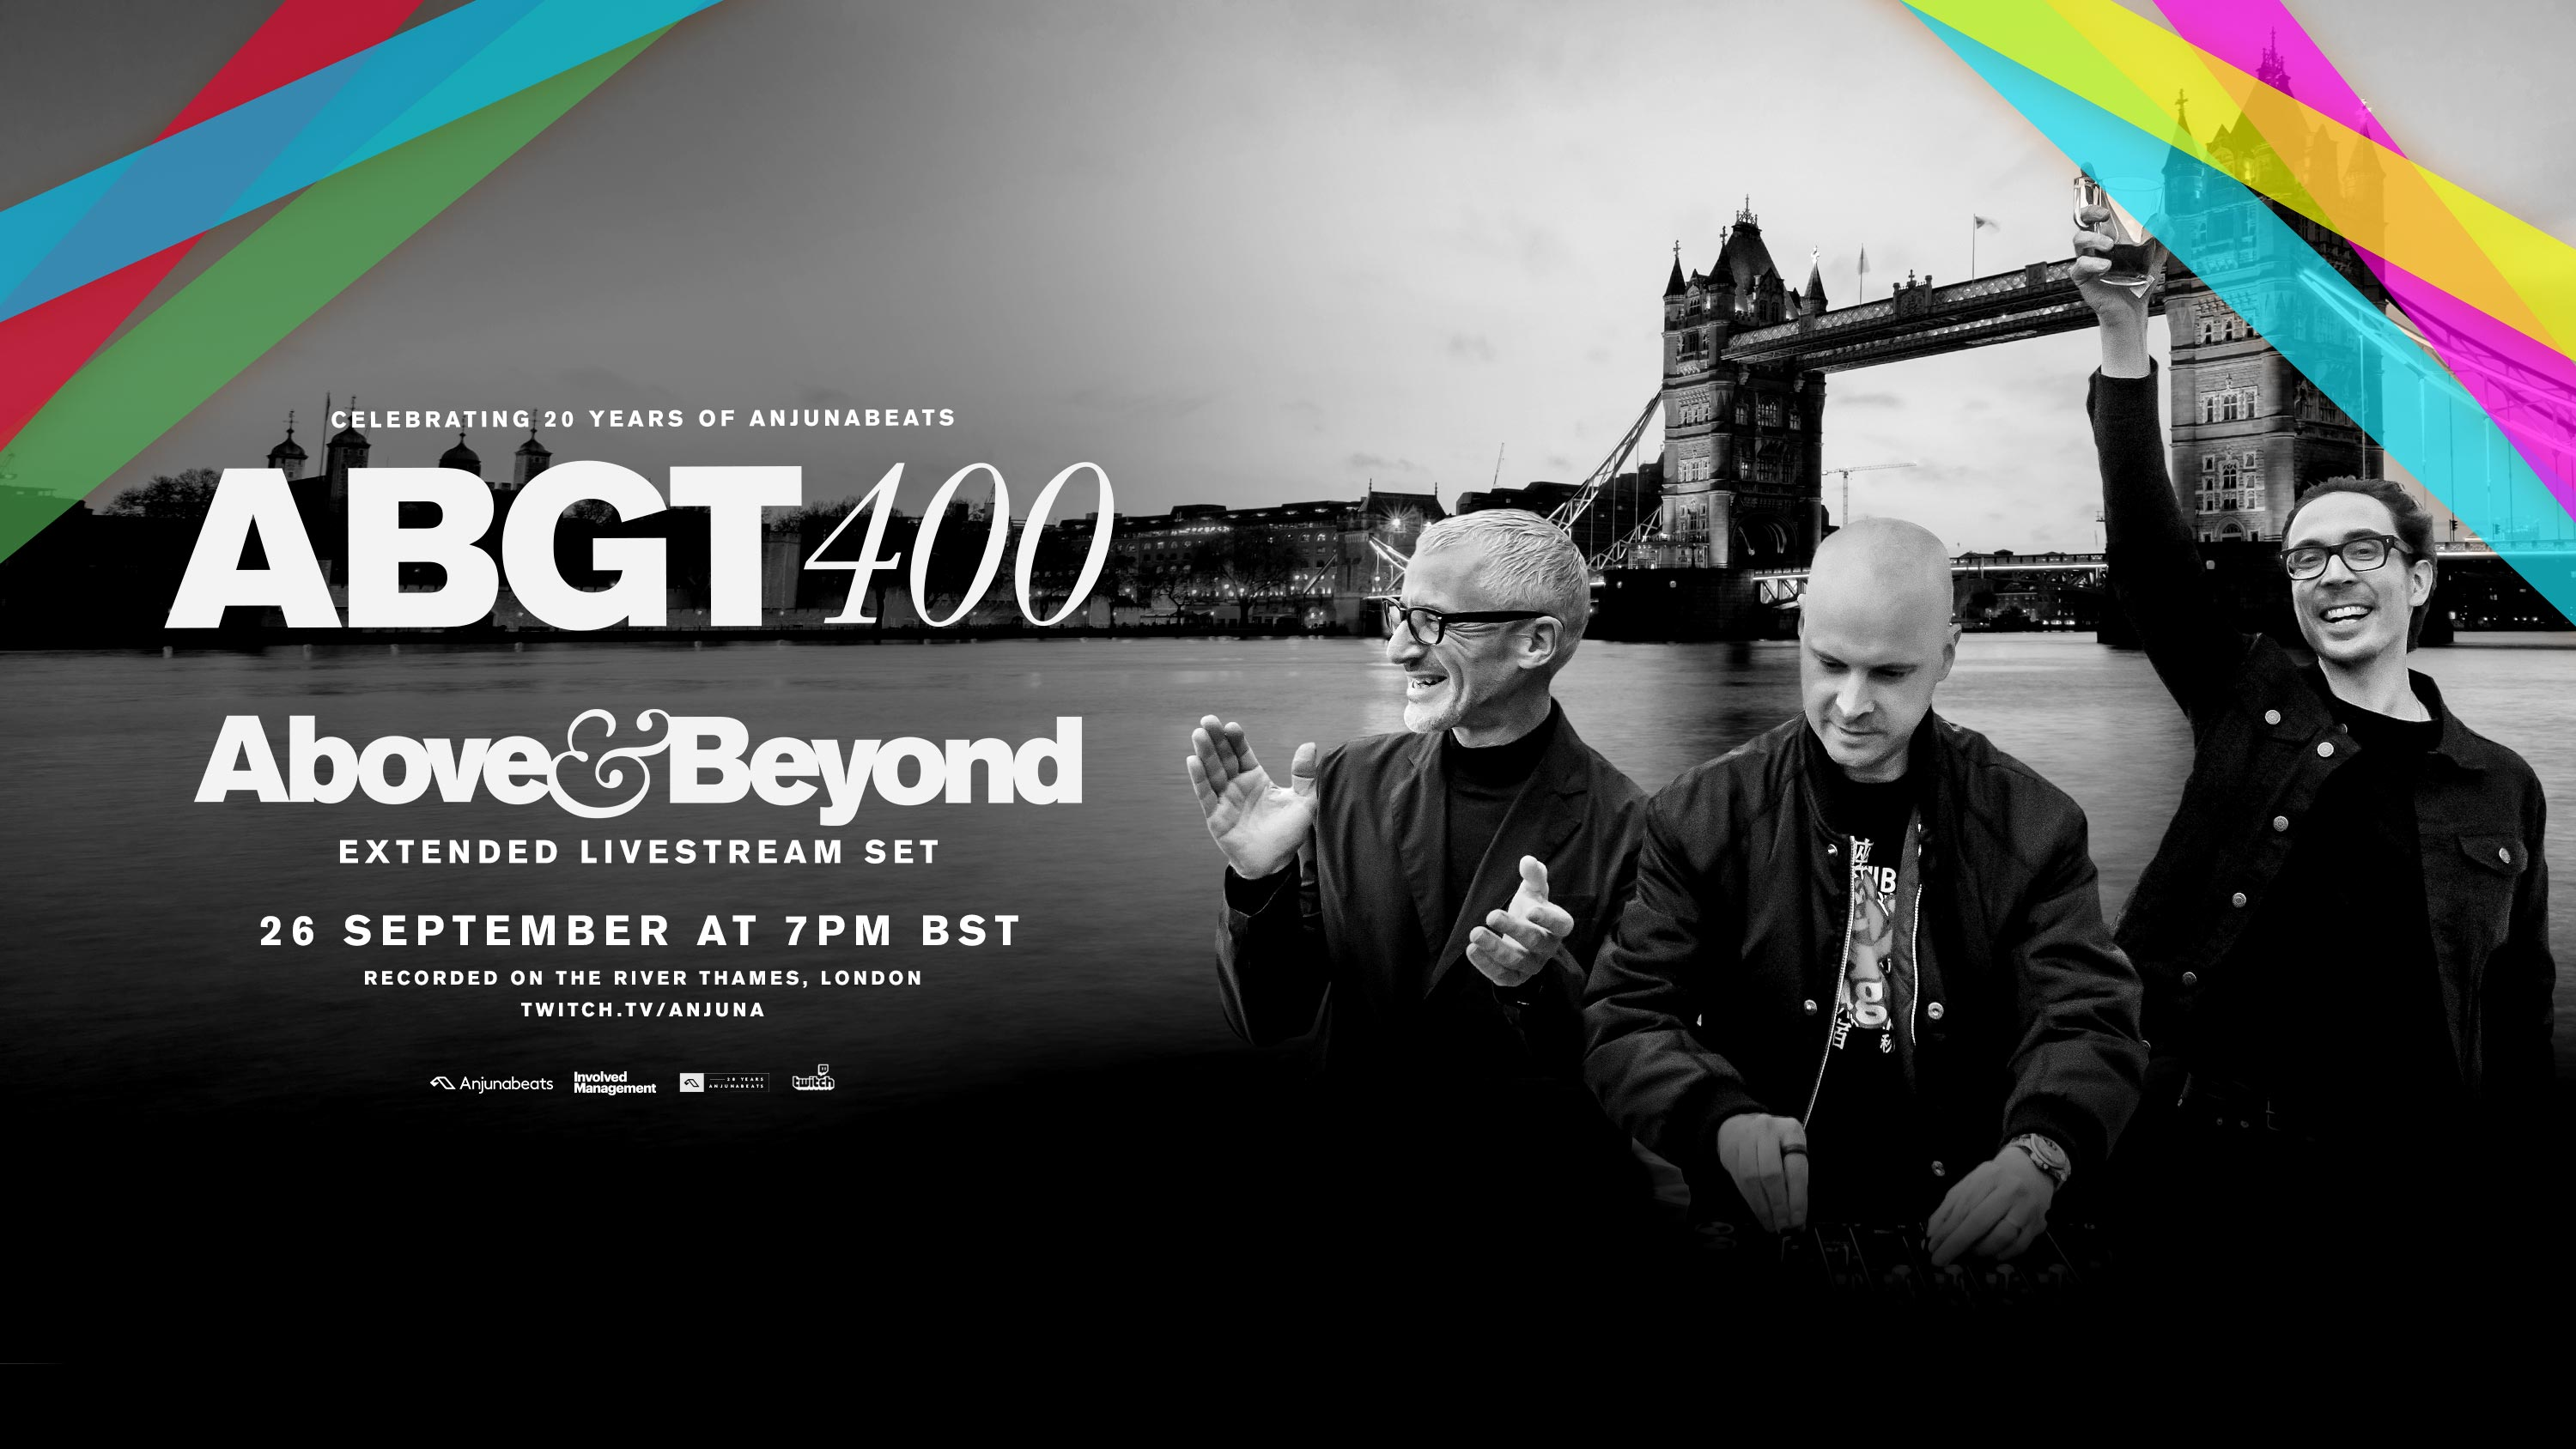 Above and Beyond - ABGT 400 (20 Years Of Anjunabeats), Live at River Thames London - 26 September 2020